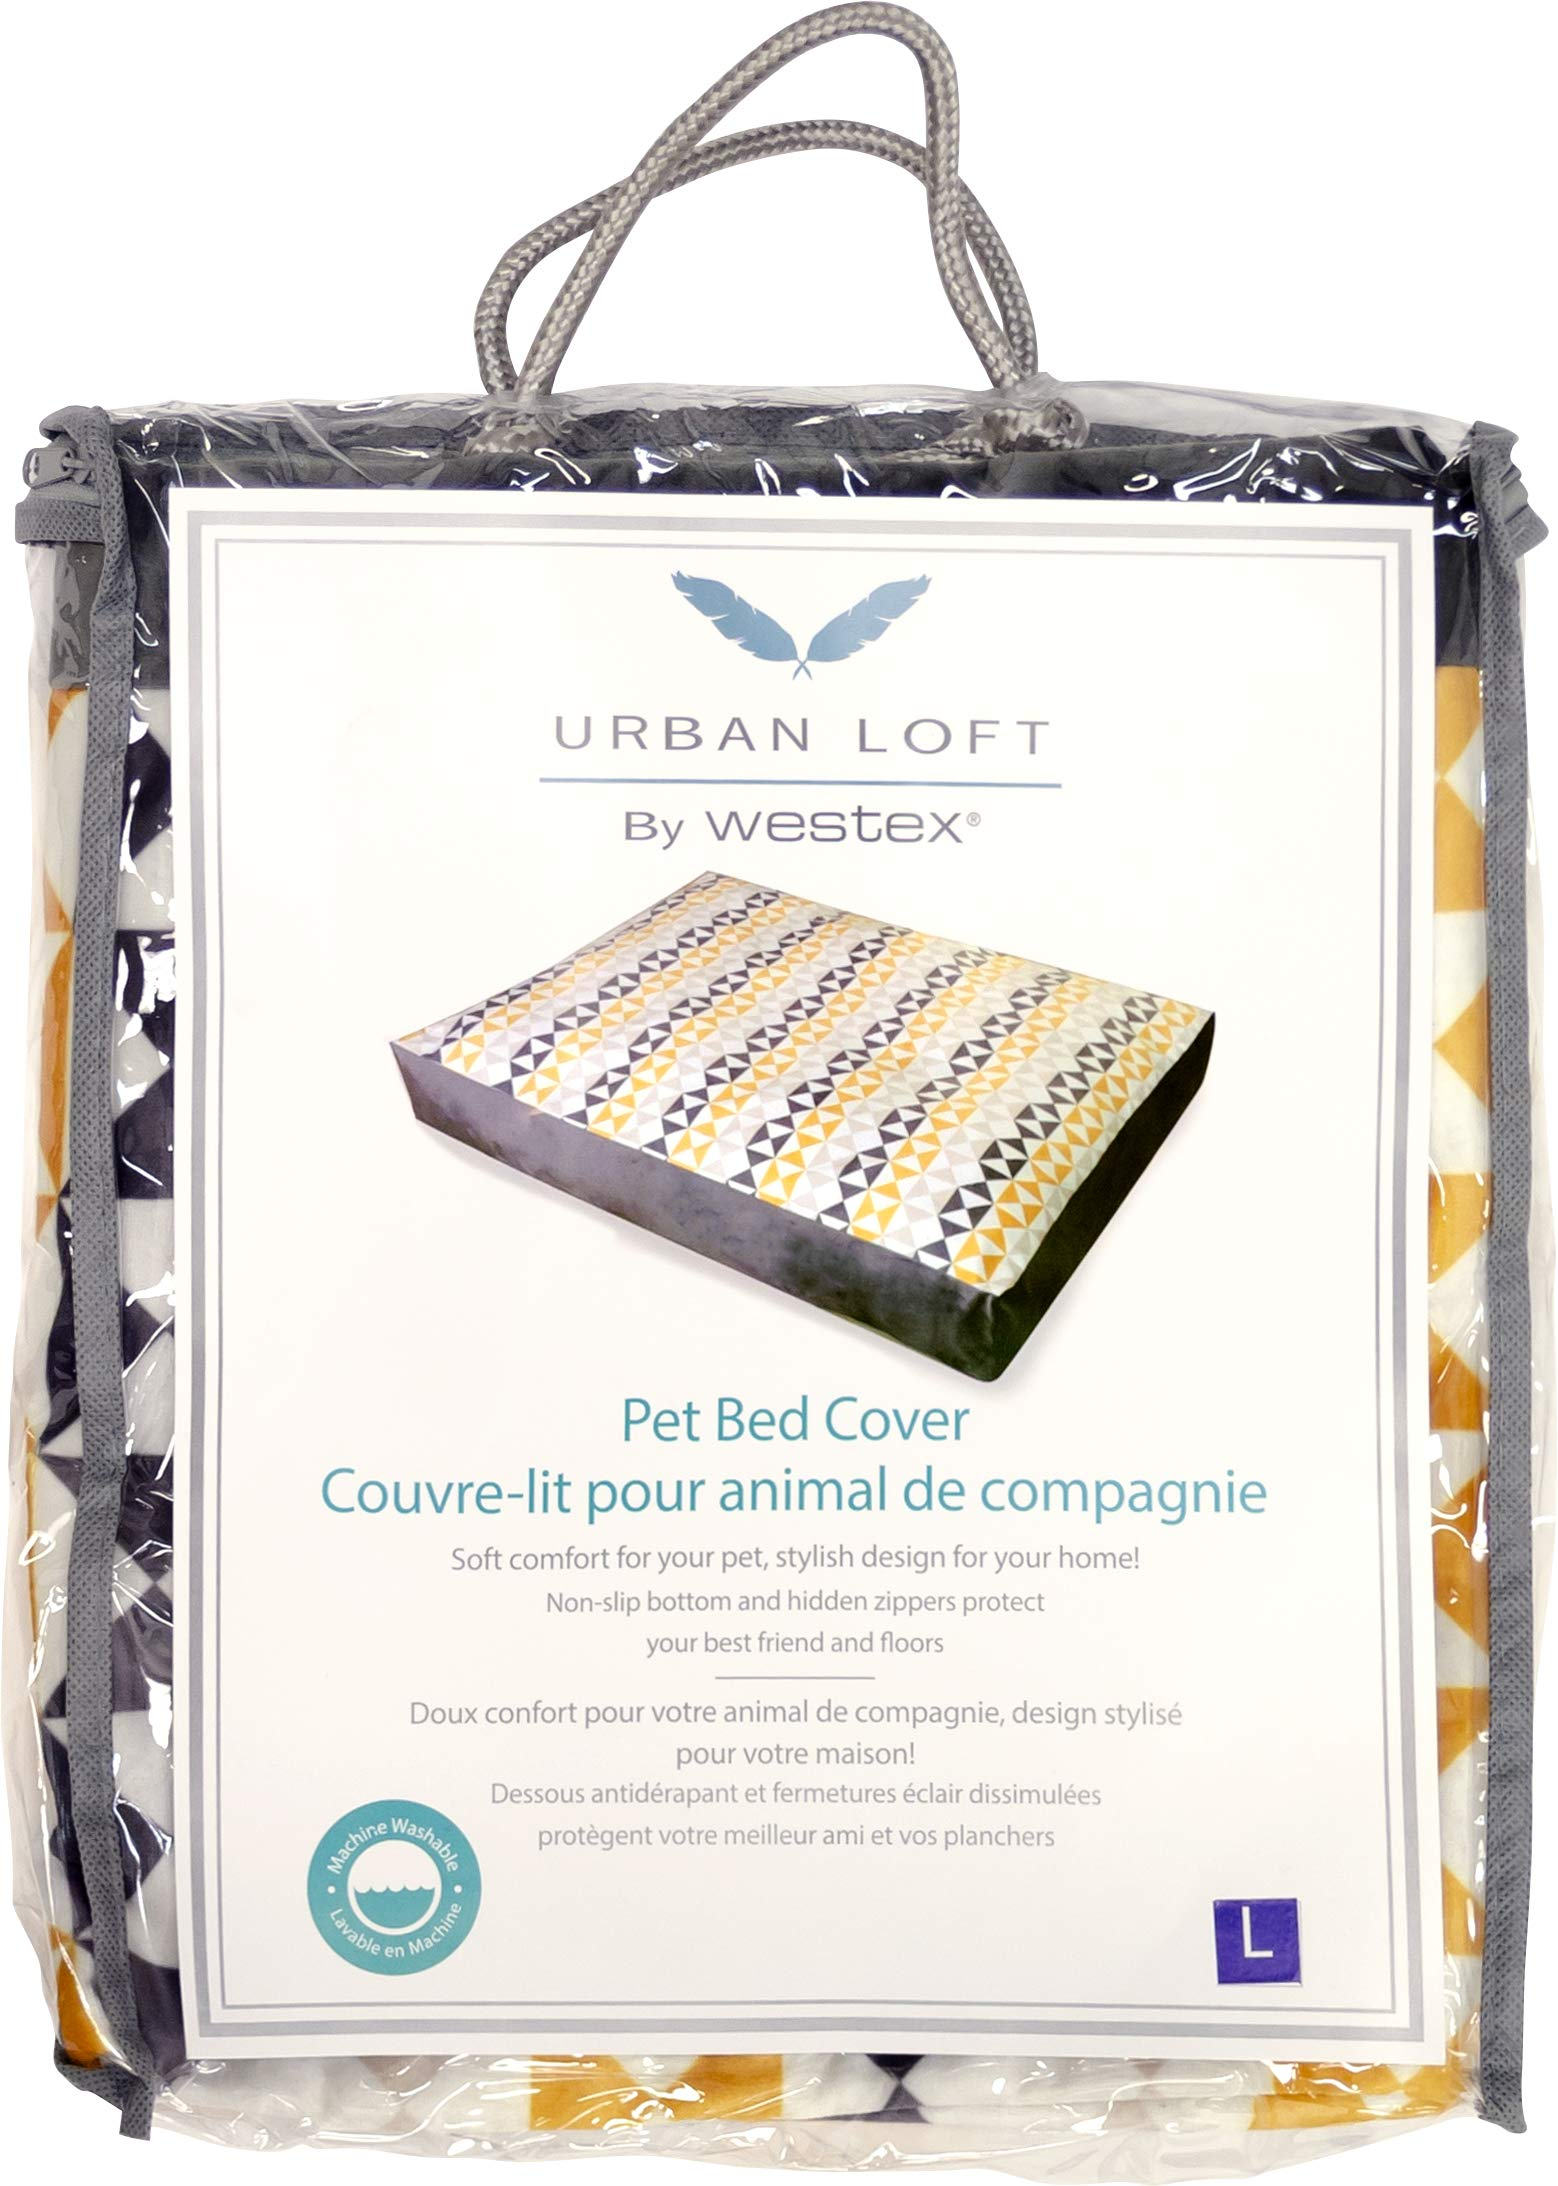 Urban Loft by Westex Triangle Design Pet Bed Replacement Cover, 52'' x 35'' x 6'' by Urban Loft by Westex (Image #5)